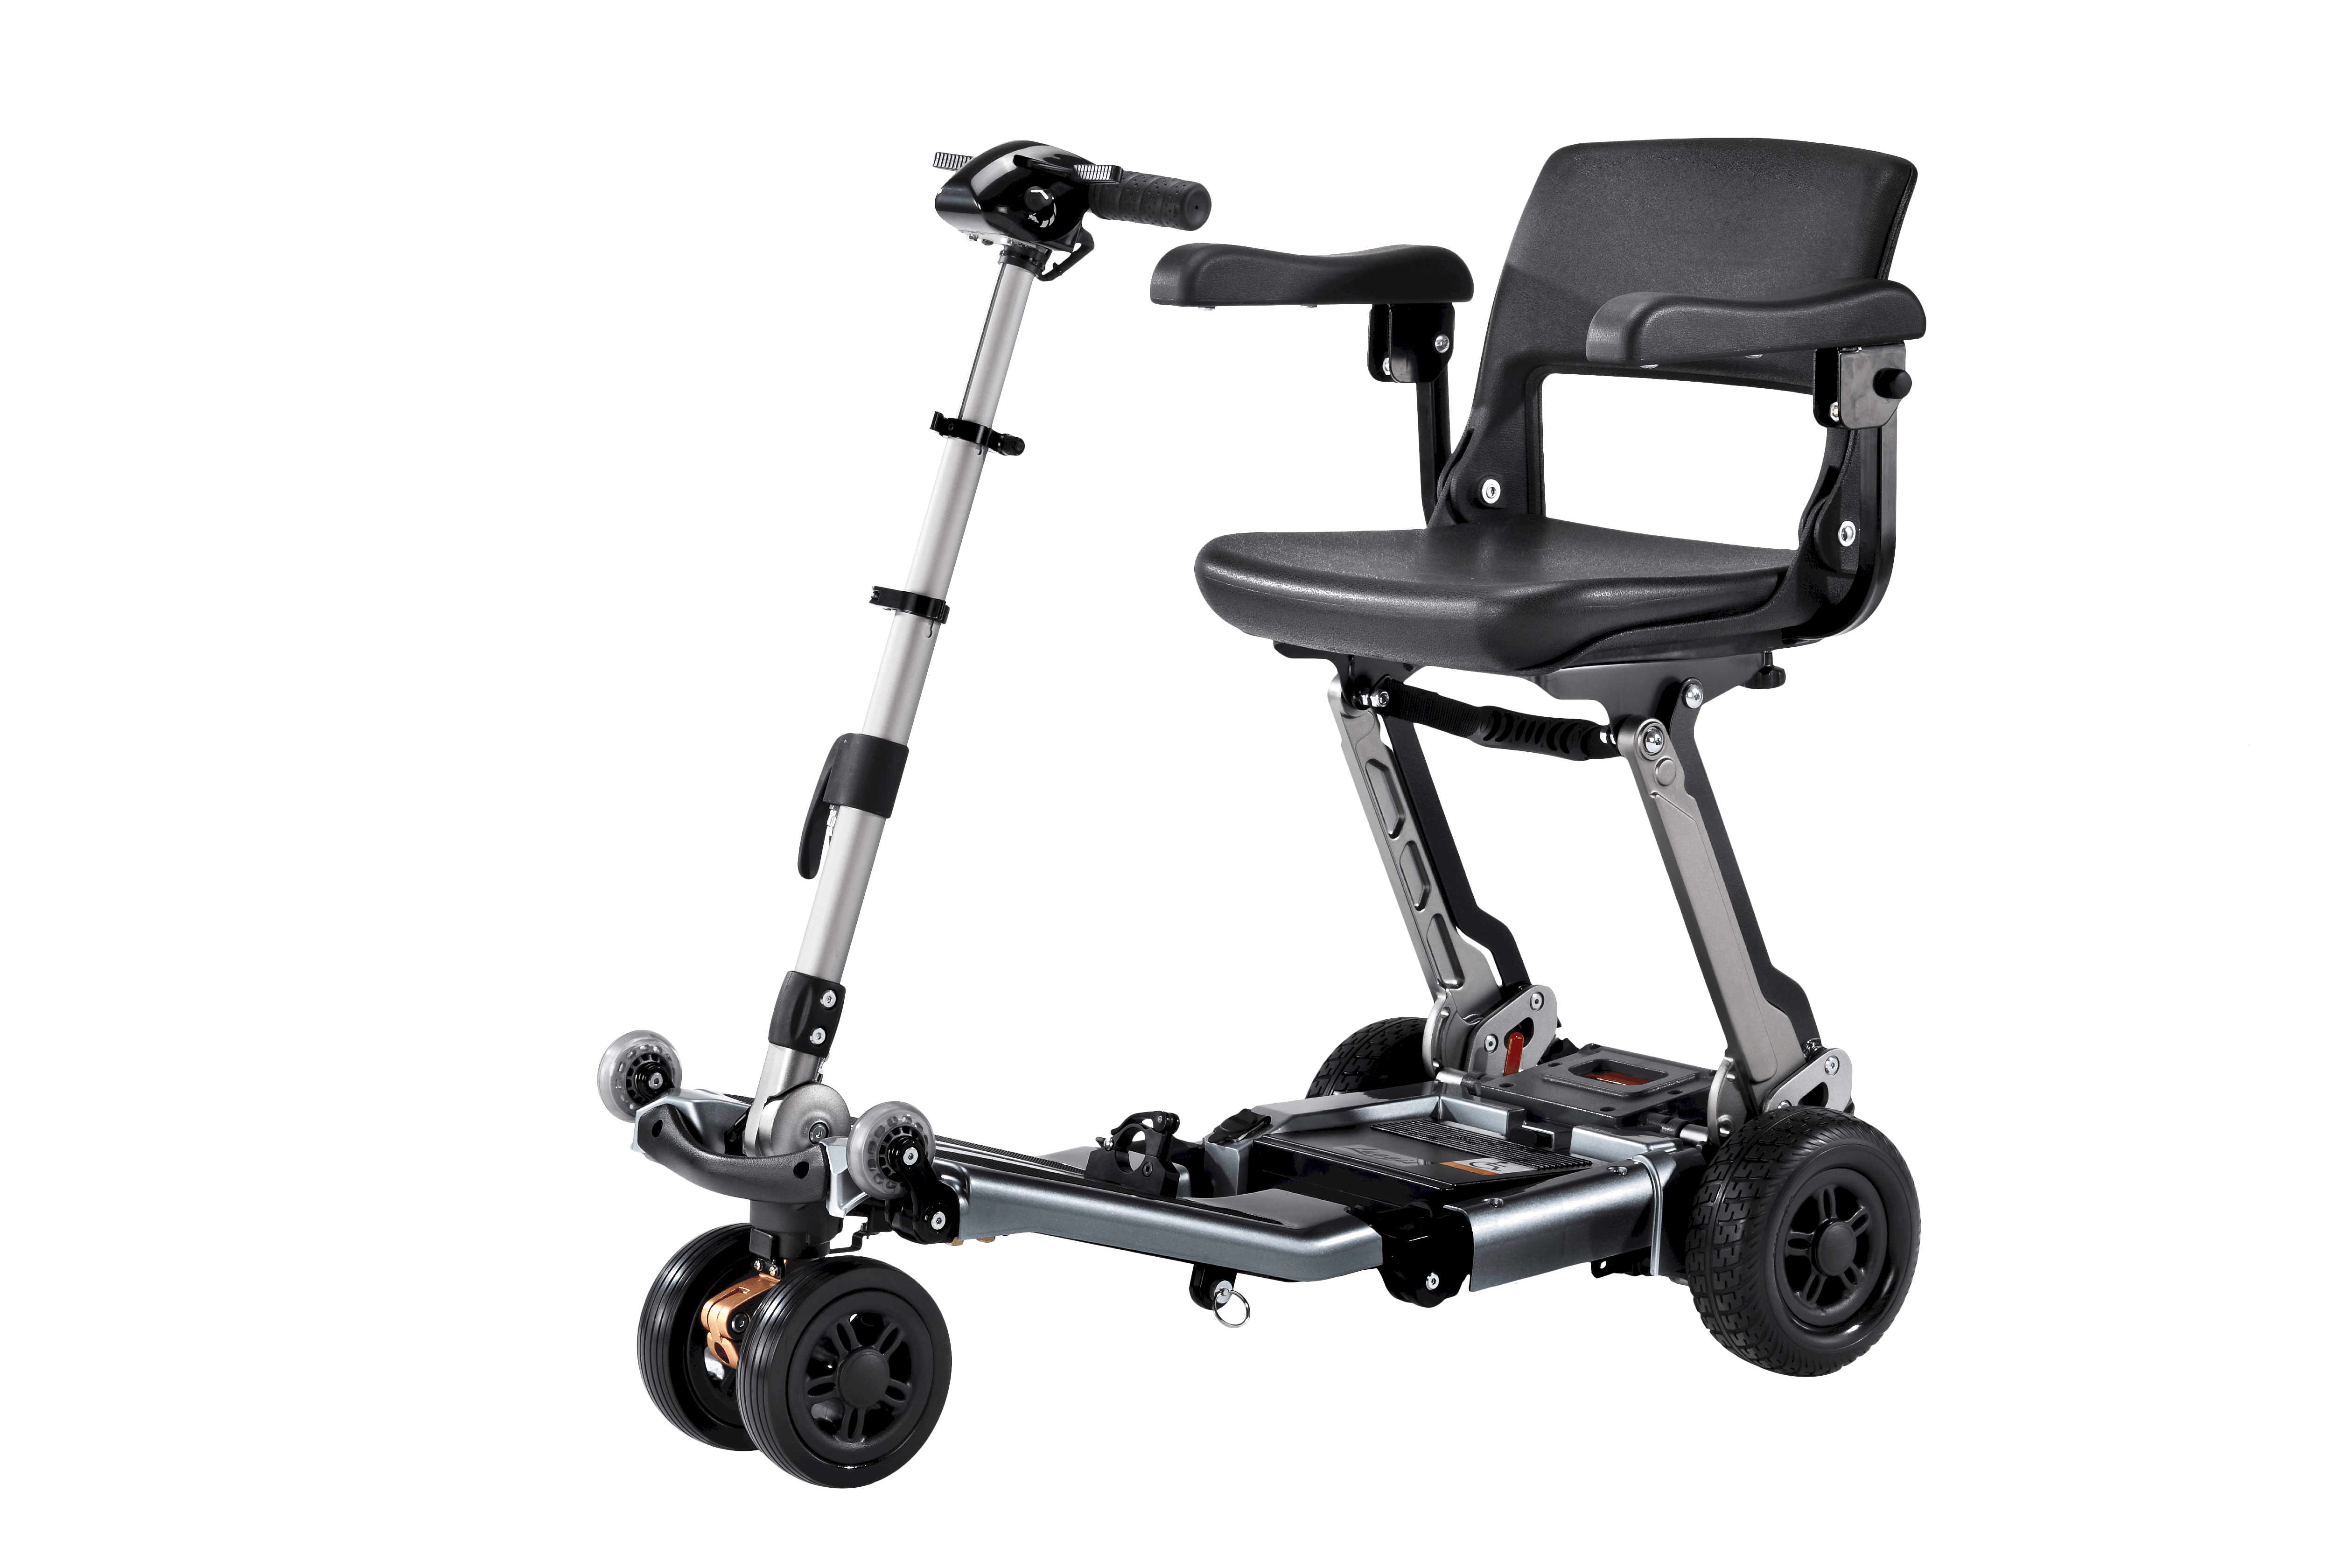 elite folding mobility scooter lightweight